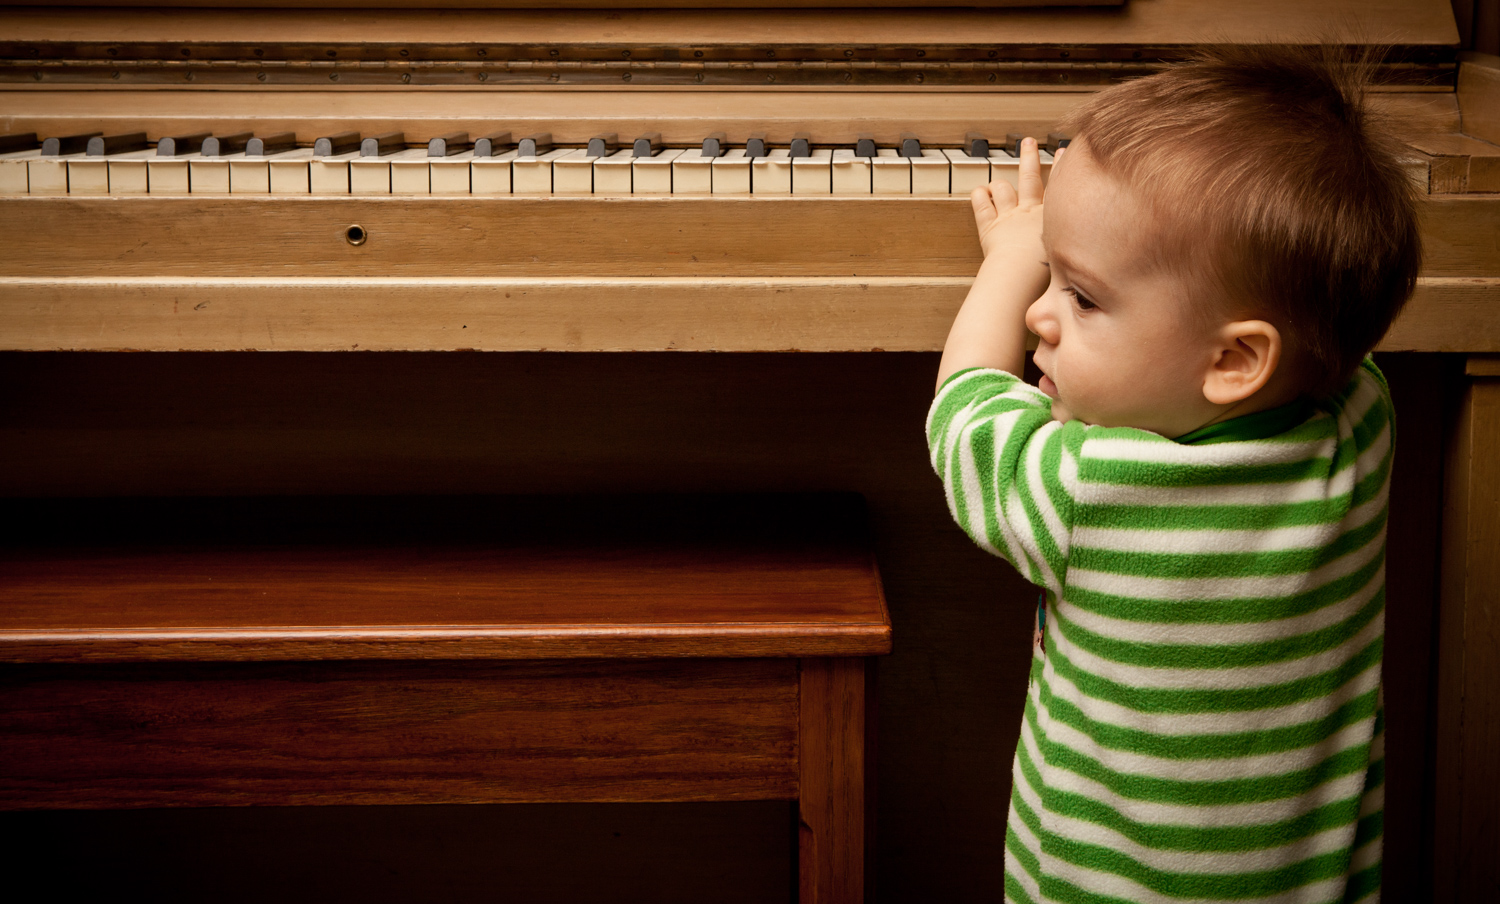 A little boy playing the piano.